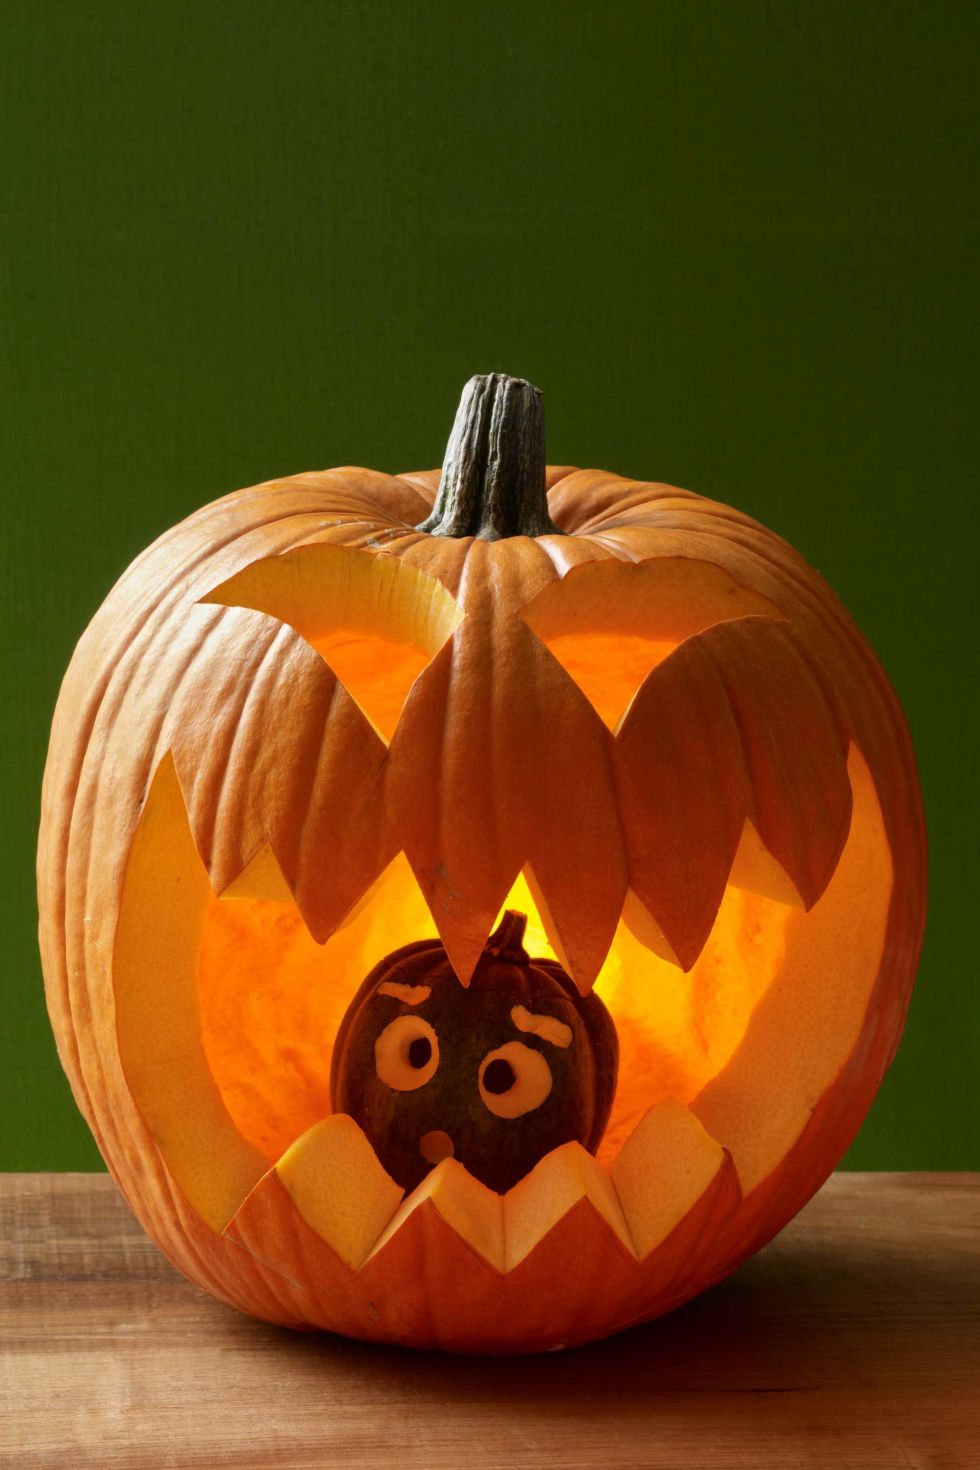 Pumpkin Carving 65 Best Pumpkin Carving Ideas Halloween 2017 Creative Jack O